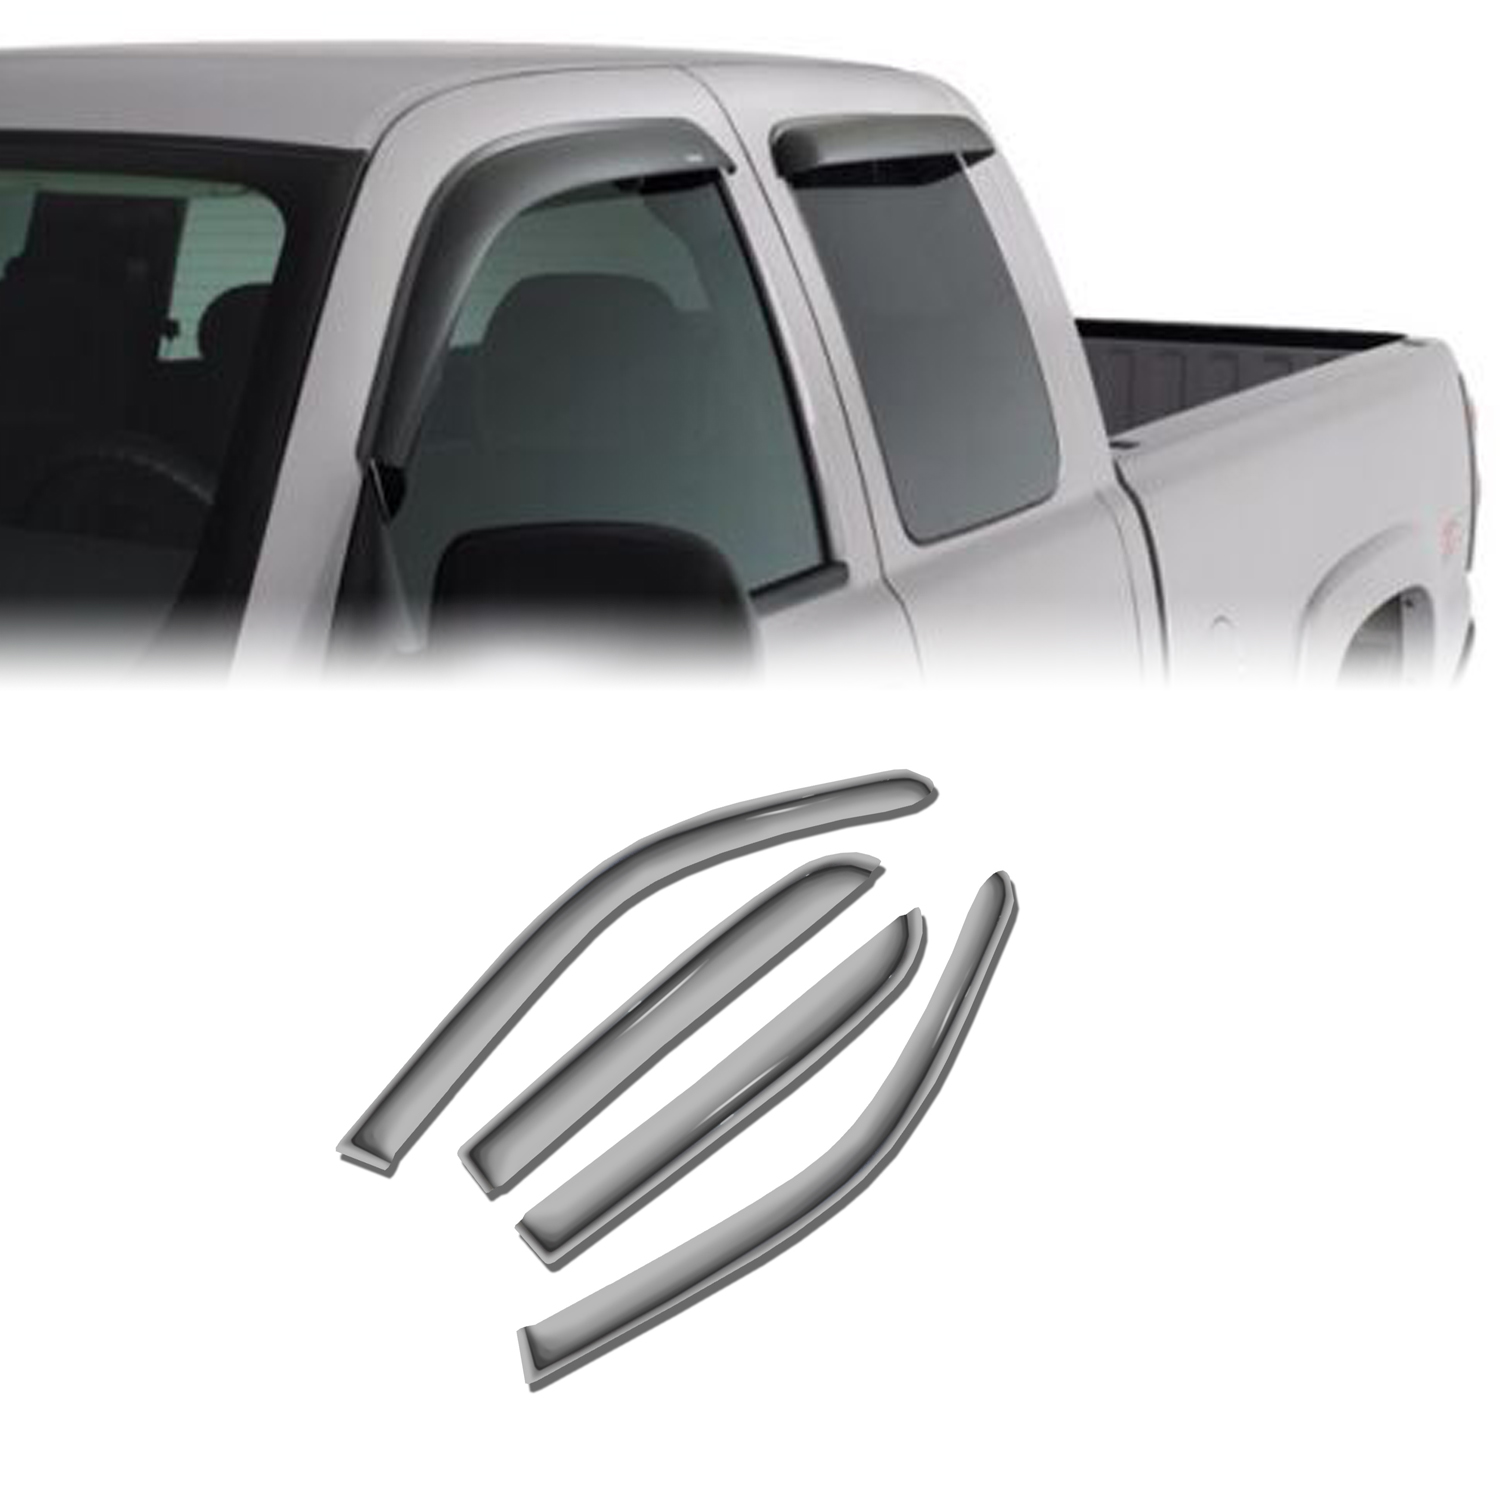 Vent Shade Window Visors Deflector For Nissan Frontier 05 06 07-16 Crew Cab 4pcs